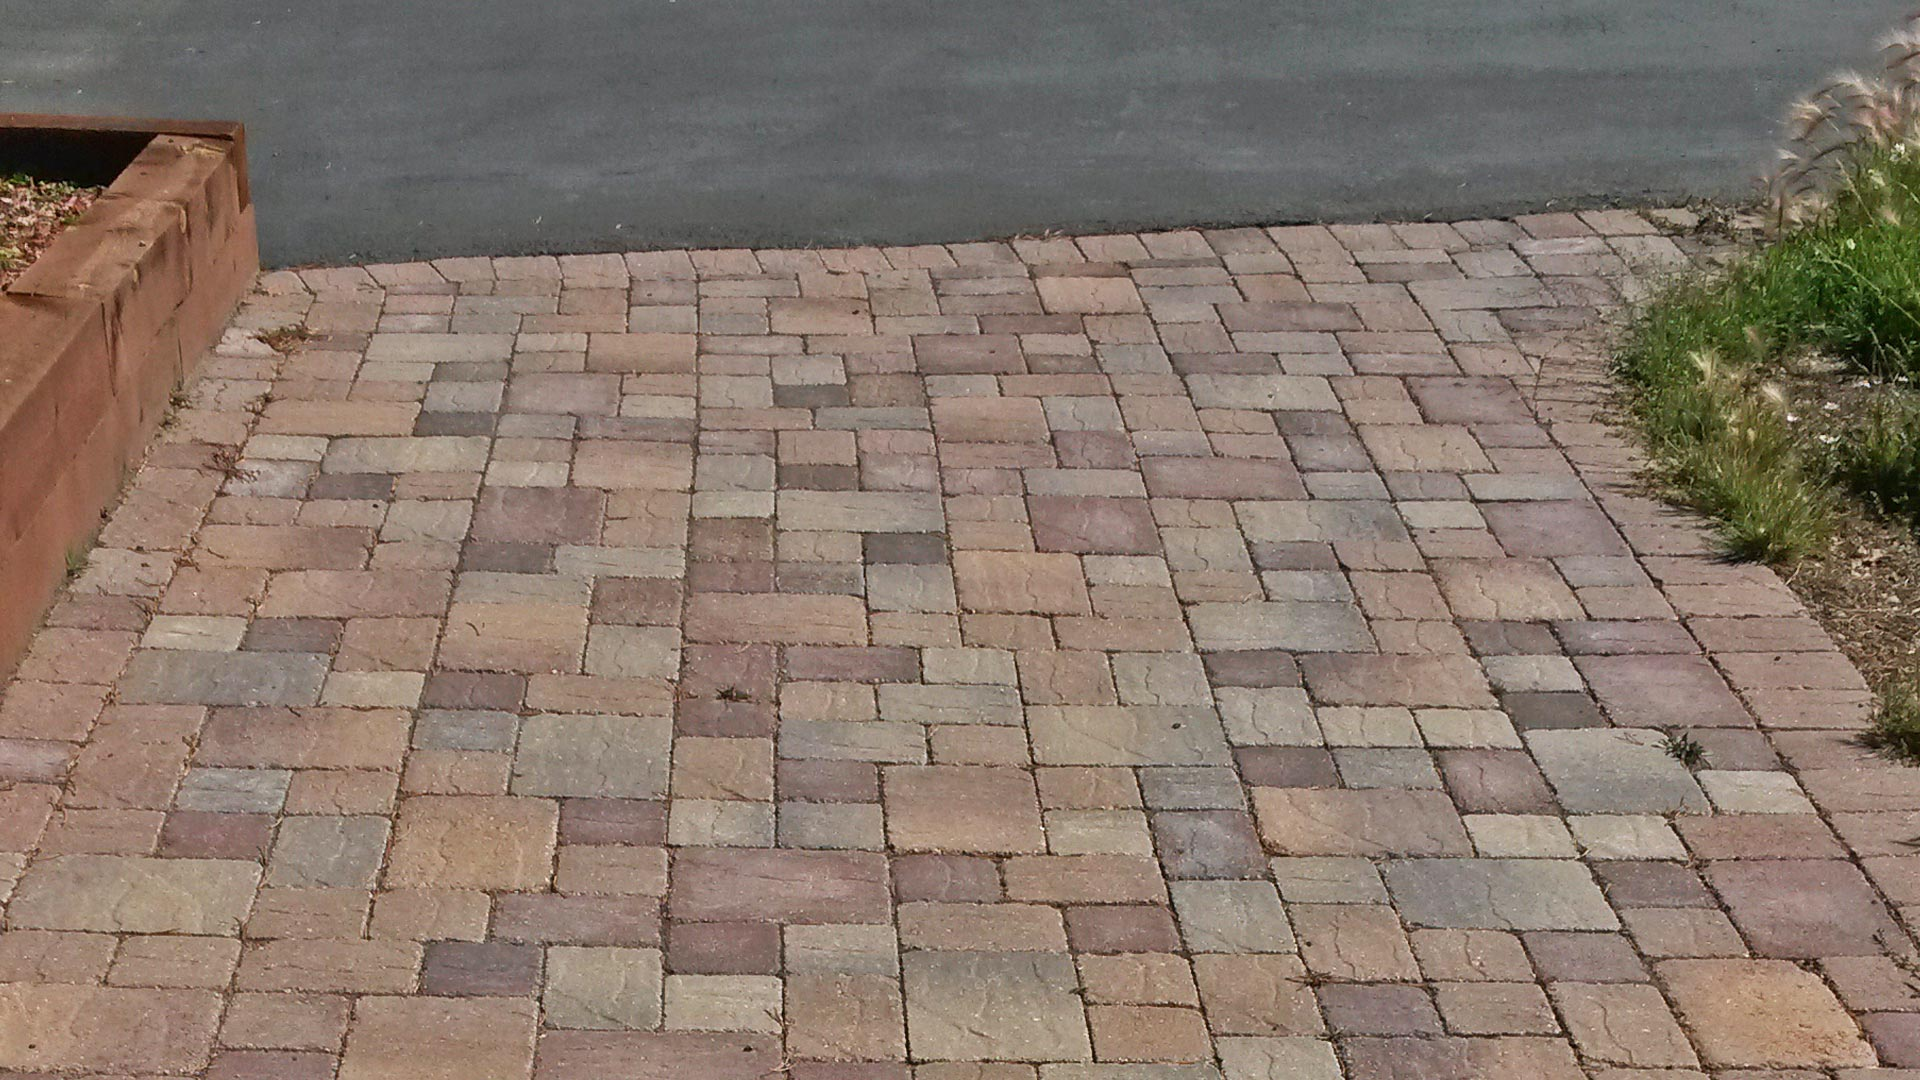 Brick paver driveway installed at a home in Winter Park.